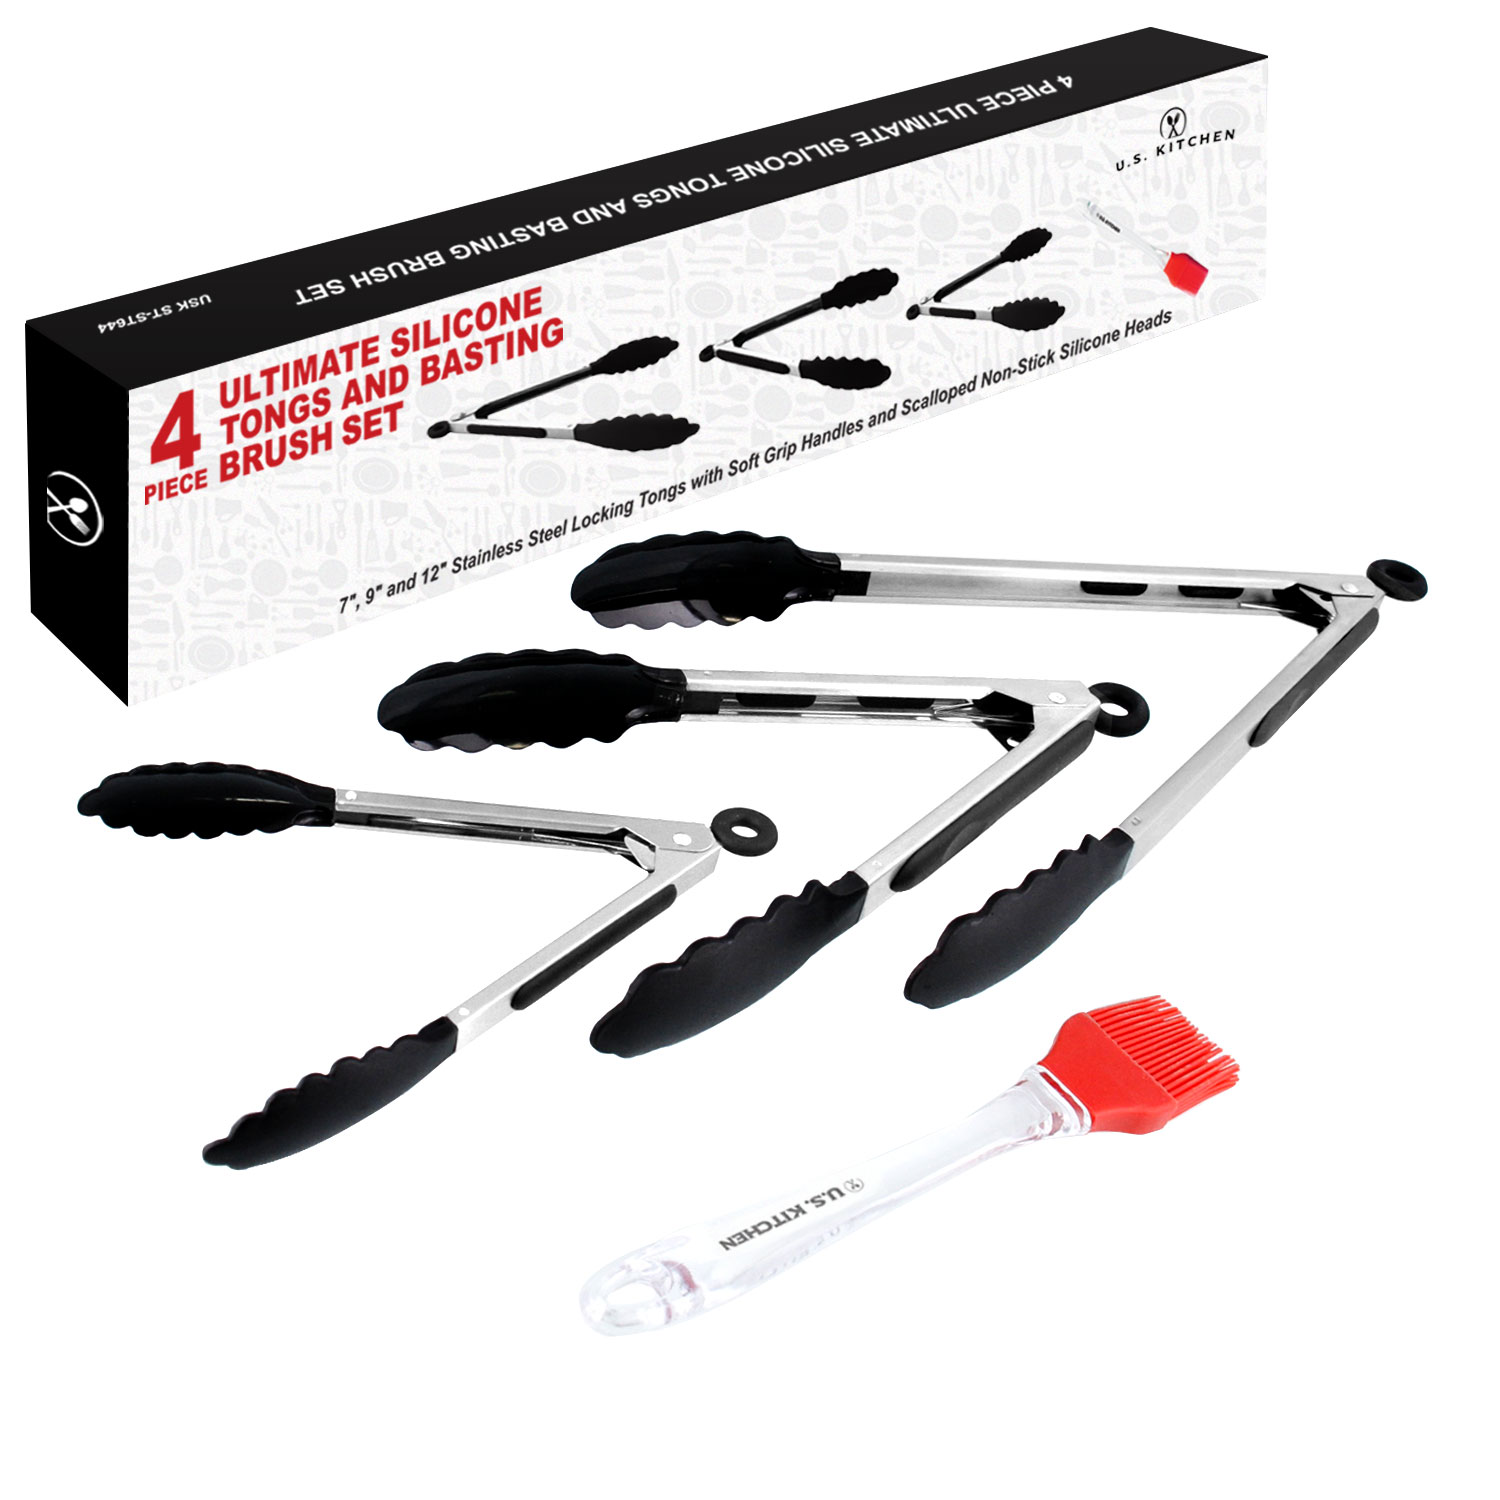 "U.S. Kitchen Supply 4 Piece Ultimate Silicone Locking Tongs and Basting Brush Set - Stainless Steel 7"", 9"" & 12"""